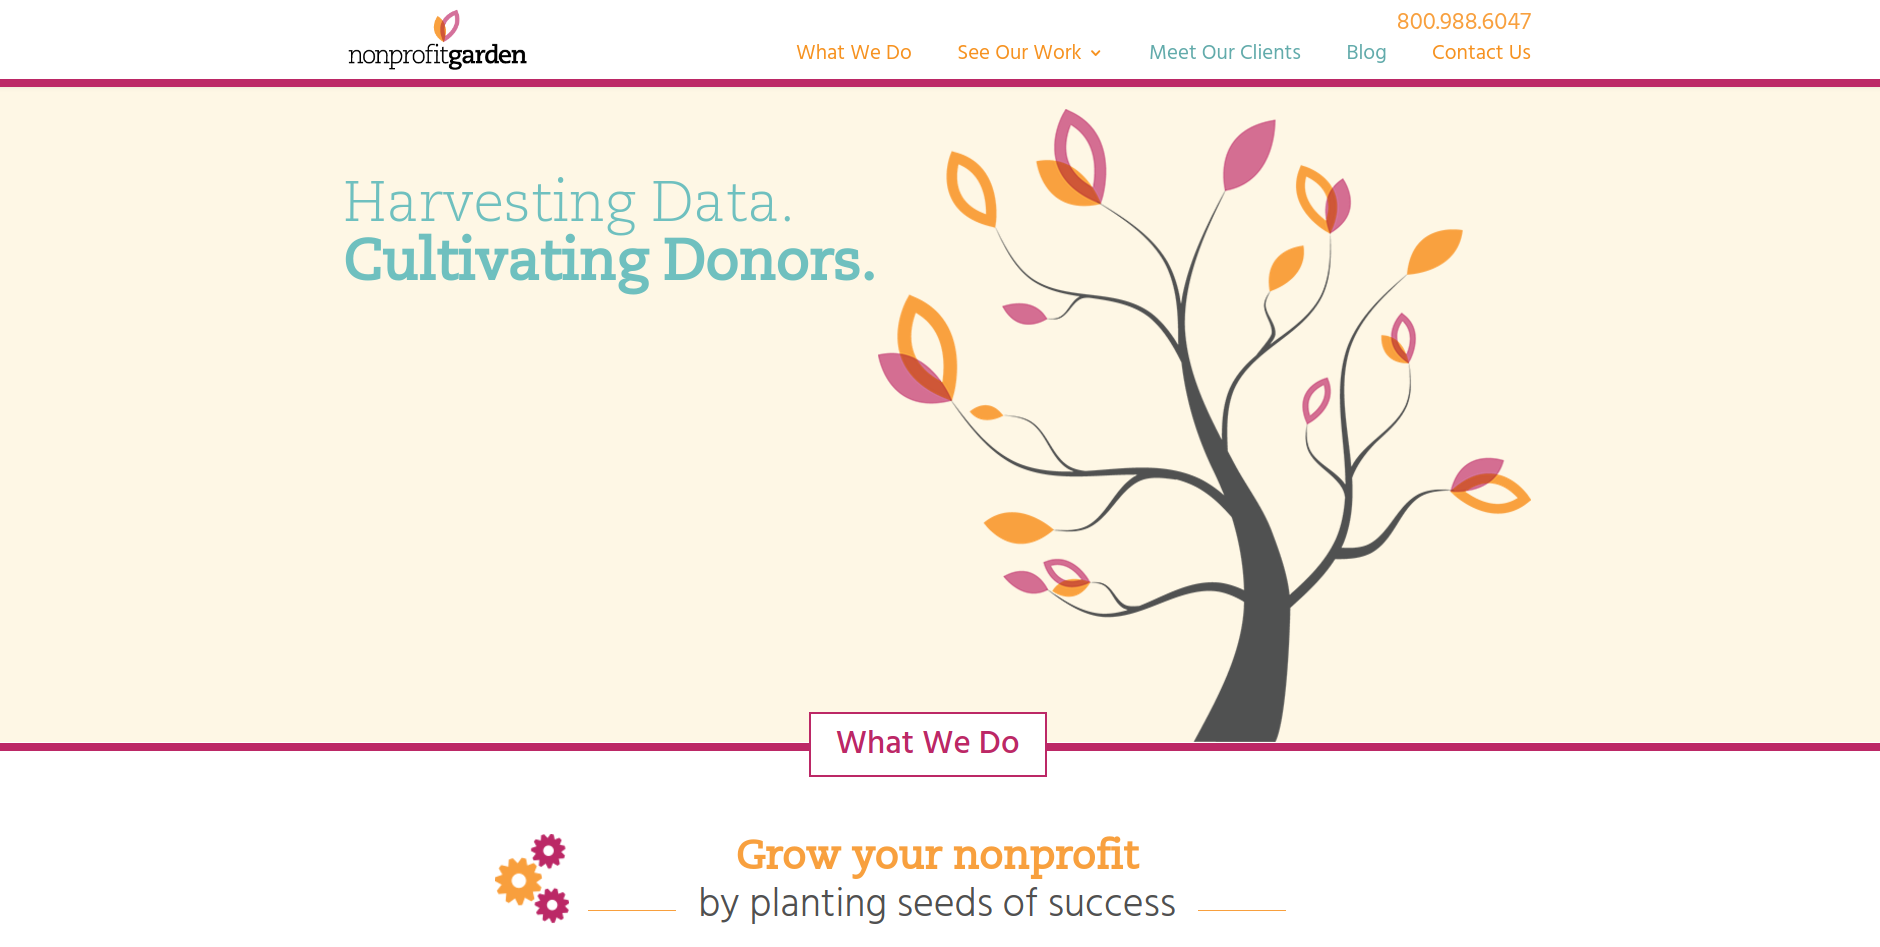 Nonprofit Garden offers web design, consulting, and training services for nonprofit organizations.